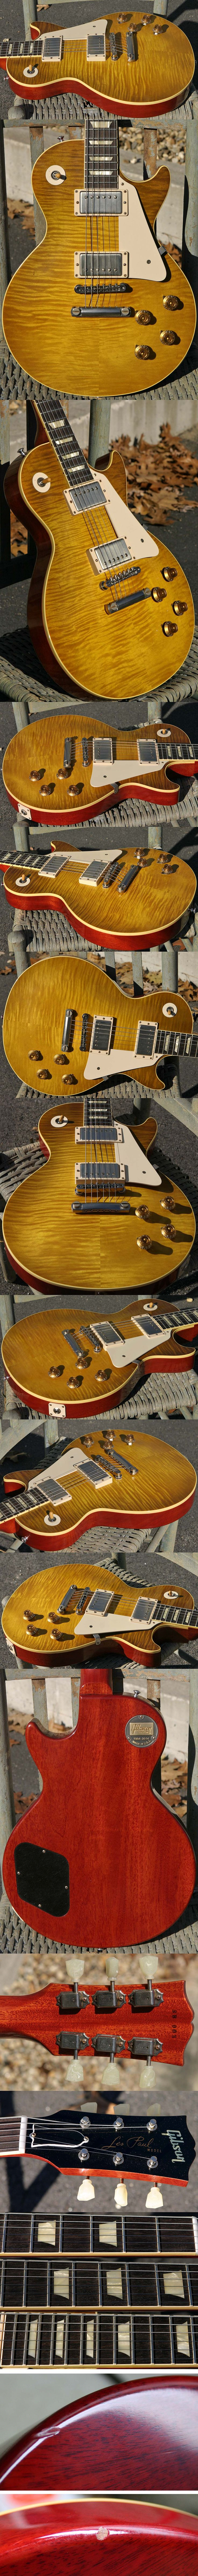 Gibson Custom Shop VOS Joe Bonamassa Skinnerburst 1959 Les Paul Reissue